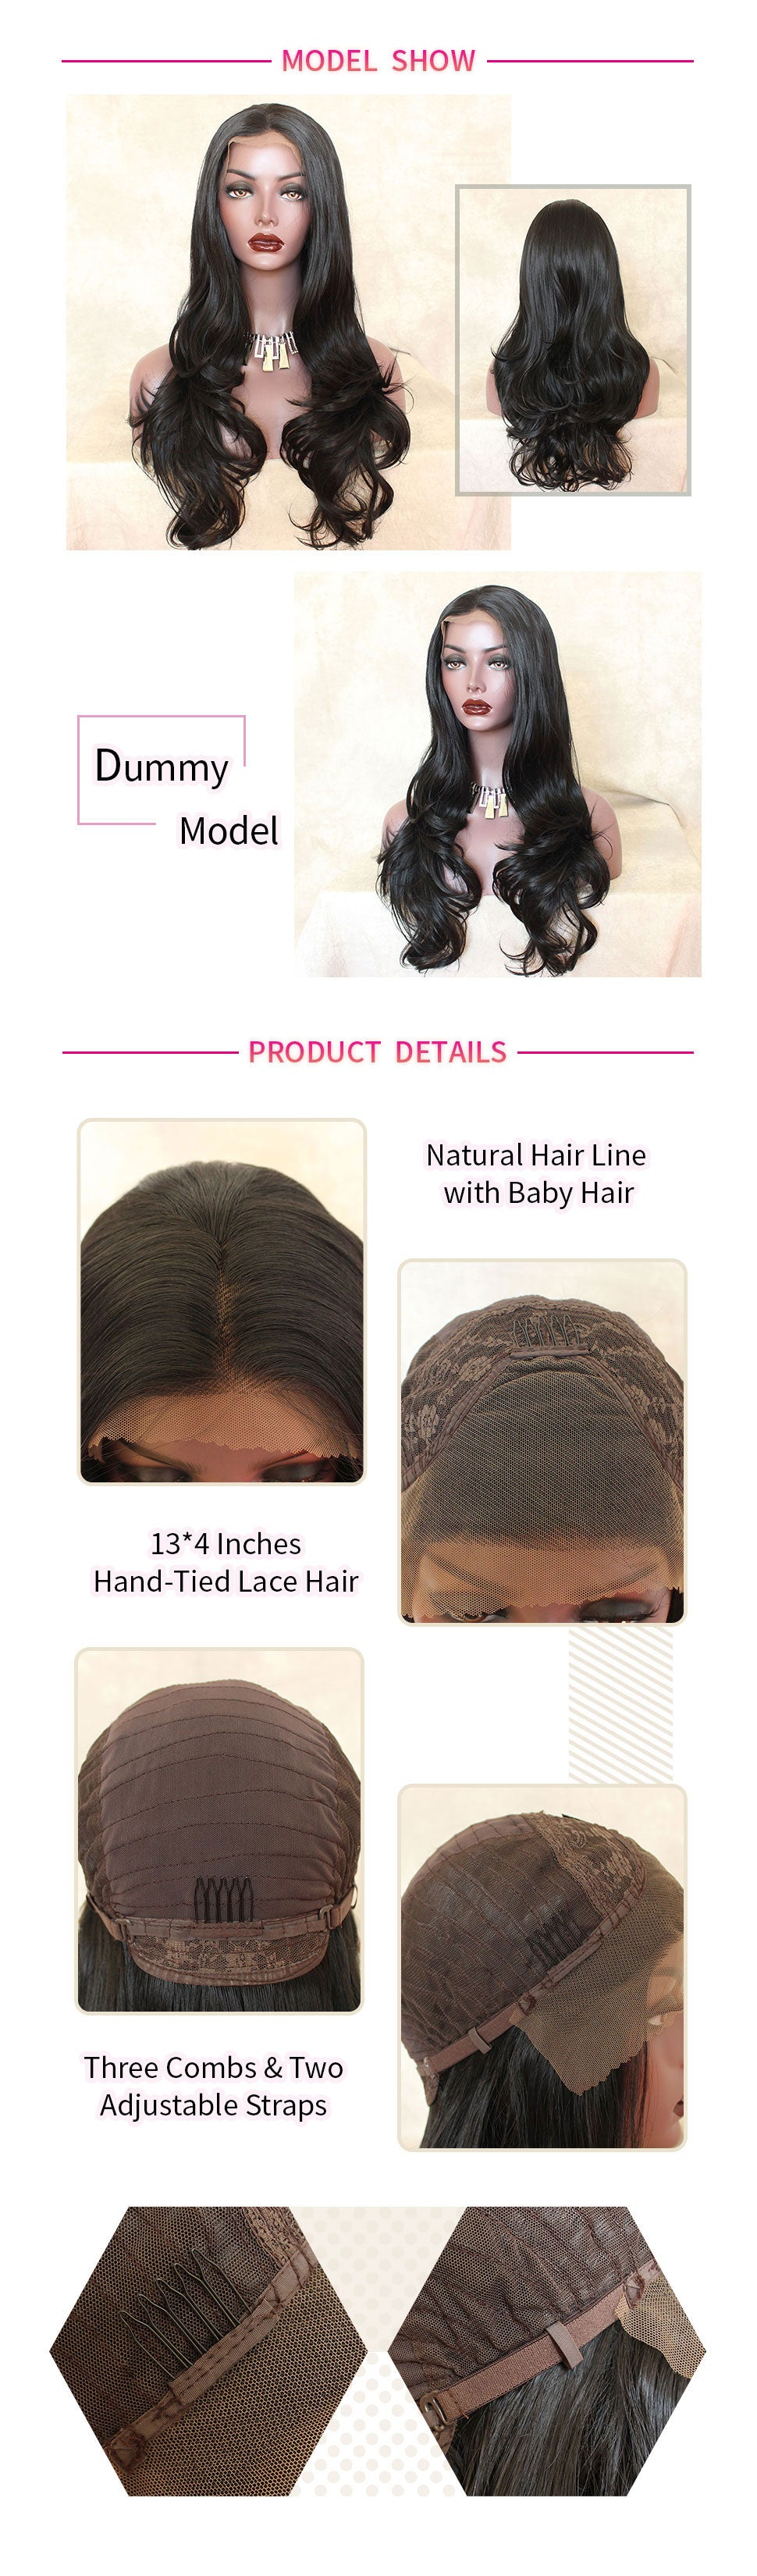 ReadyWig Black Body Wave Center Part Synthetic Lace Front Wig 24 Inches-hair details